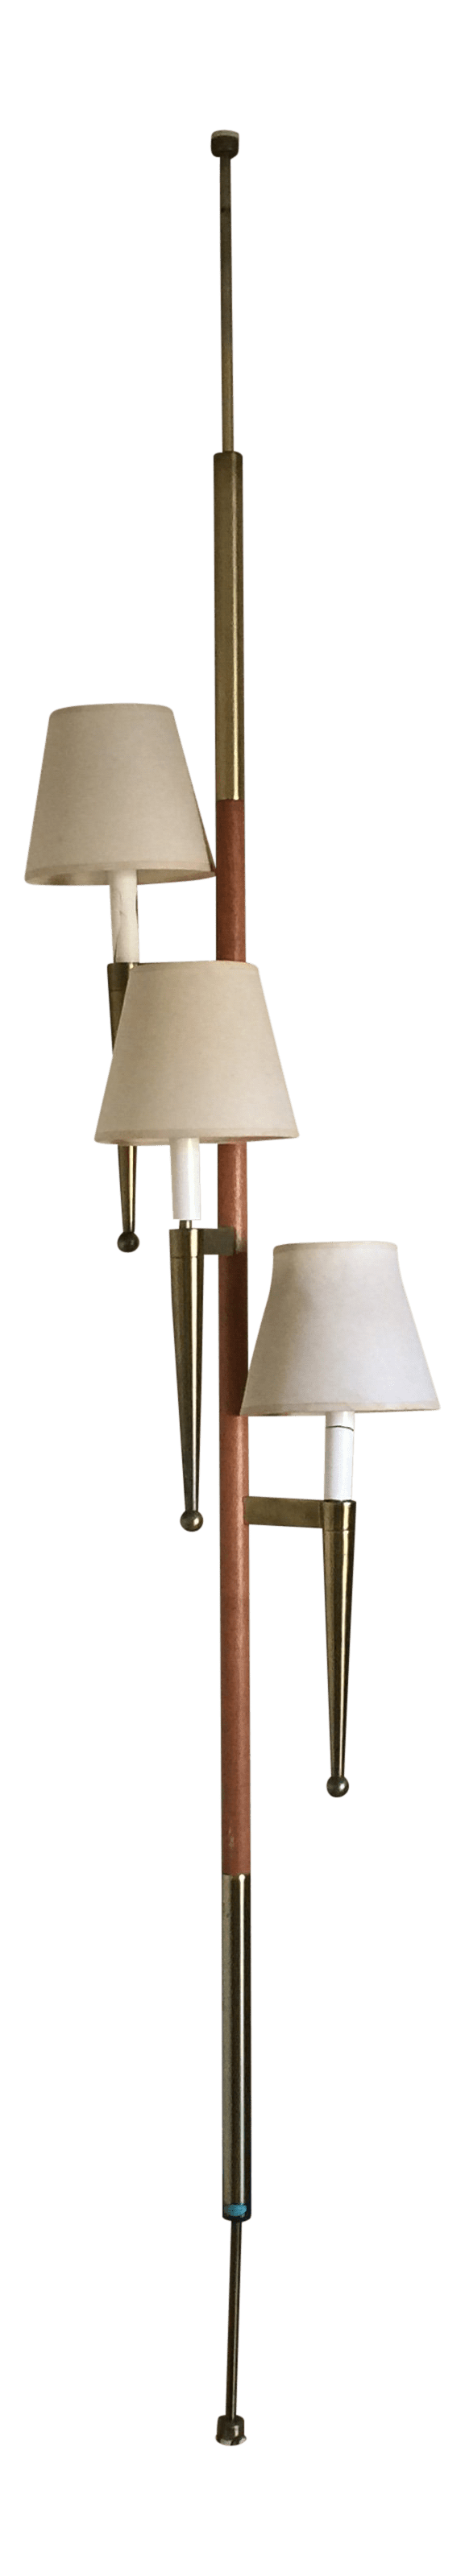 small resolution of wiring pole lamp